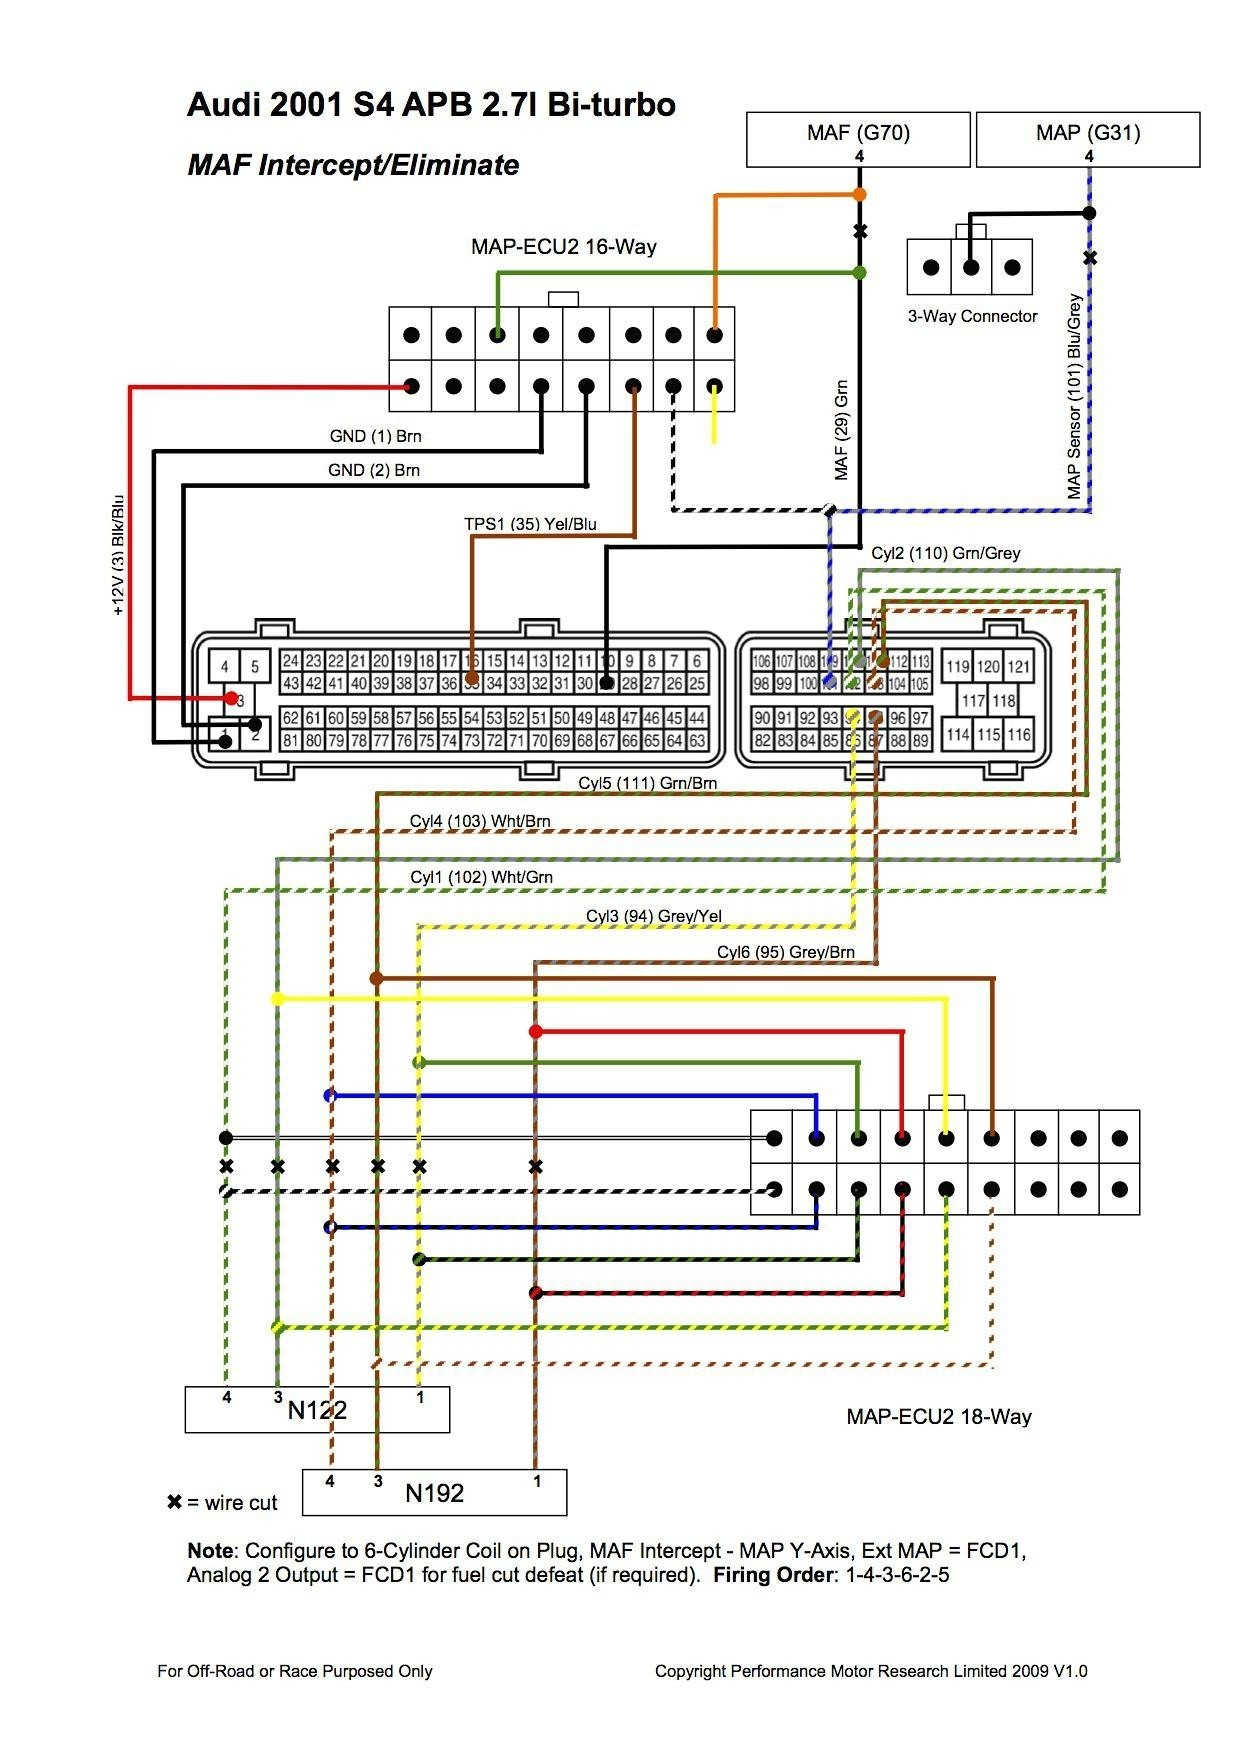 dodge ram van wiring diagram 96 dodge wiring diagram wiring diagram 2000 dodge ram 1500 van wiring diagram 96 dodge wiring diagram wiring diagram